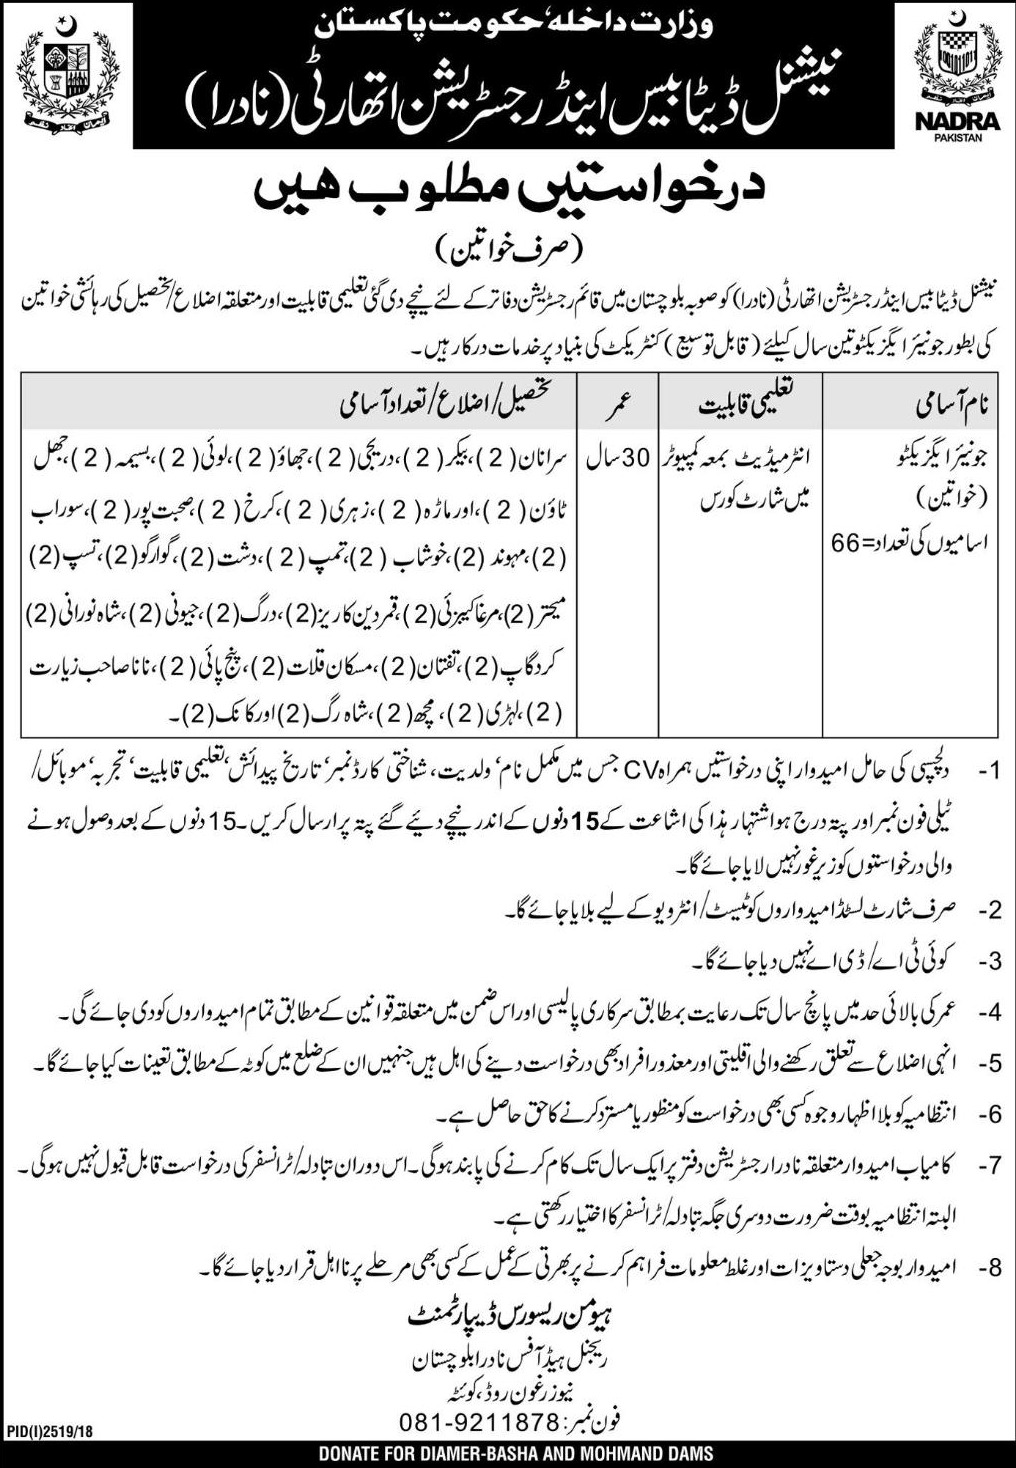 NADRA Balochistan Jobs 2018 Junior Executive